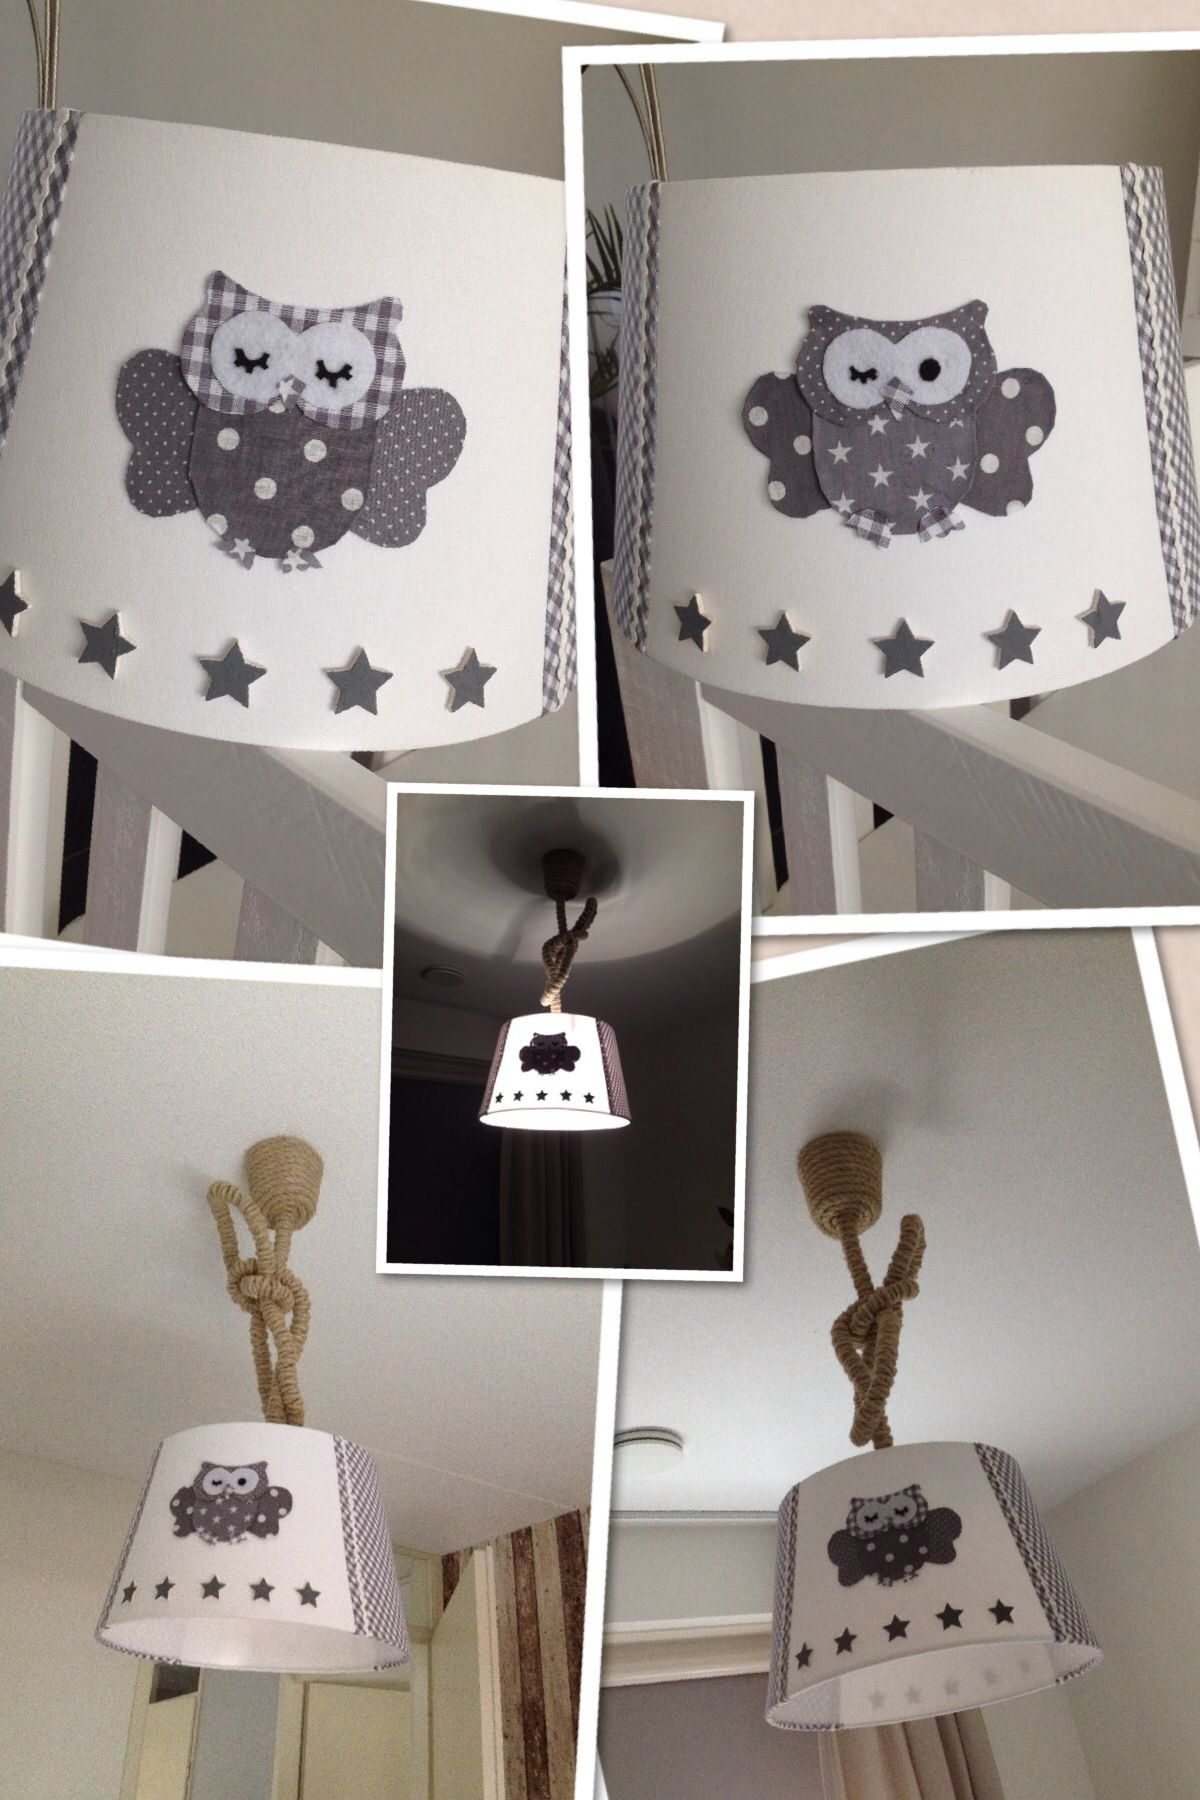 Verlichting In Babykamer Lamp Babykamer Met Uiltjes My Diy Projects Baby Diy